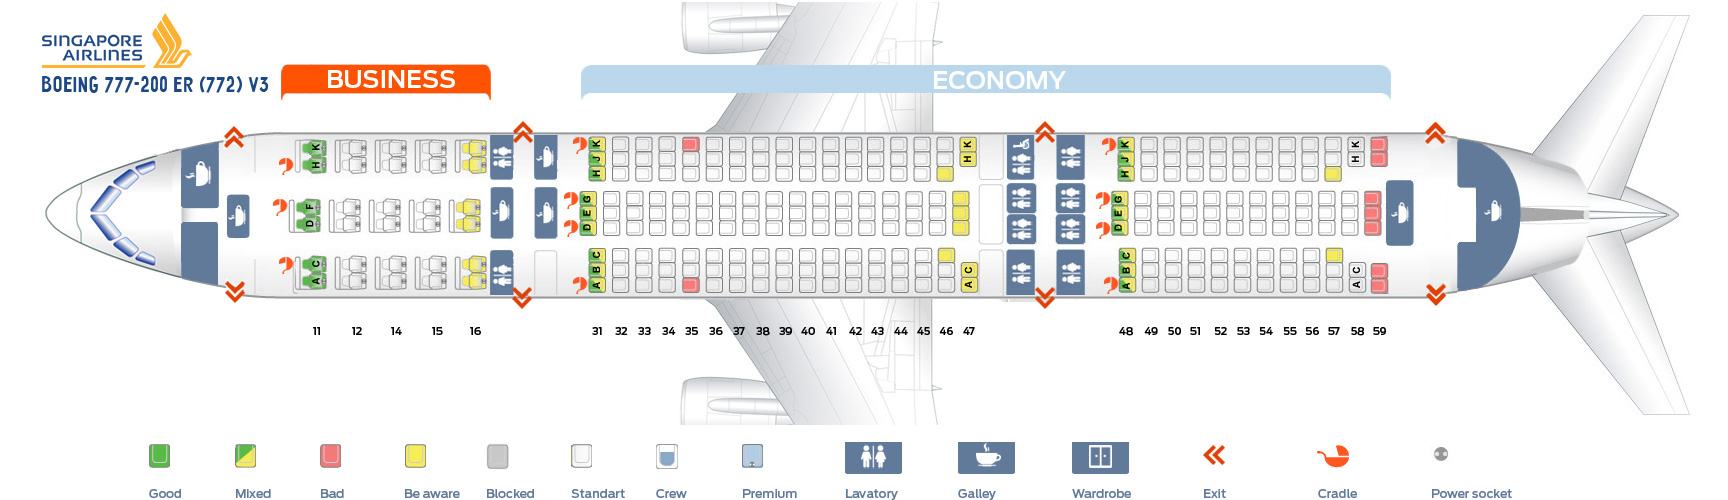 Seat Map Boeing 777-200ER V3 Singapore Airlines